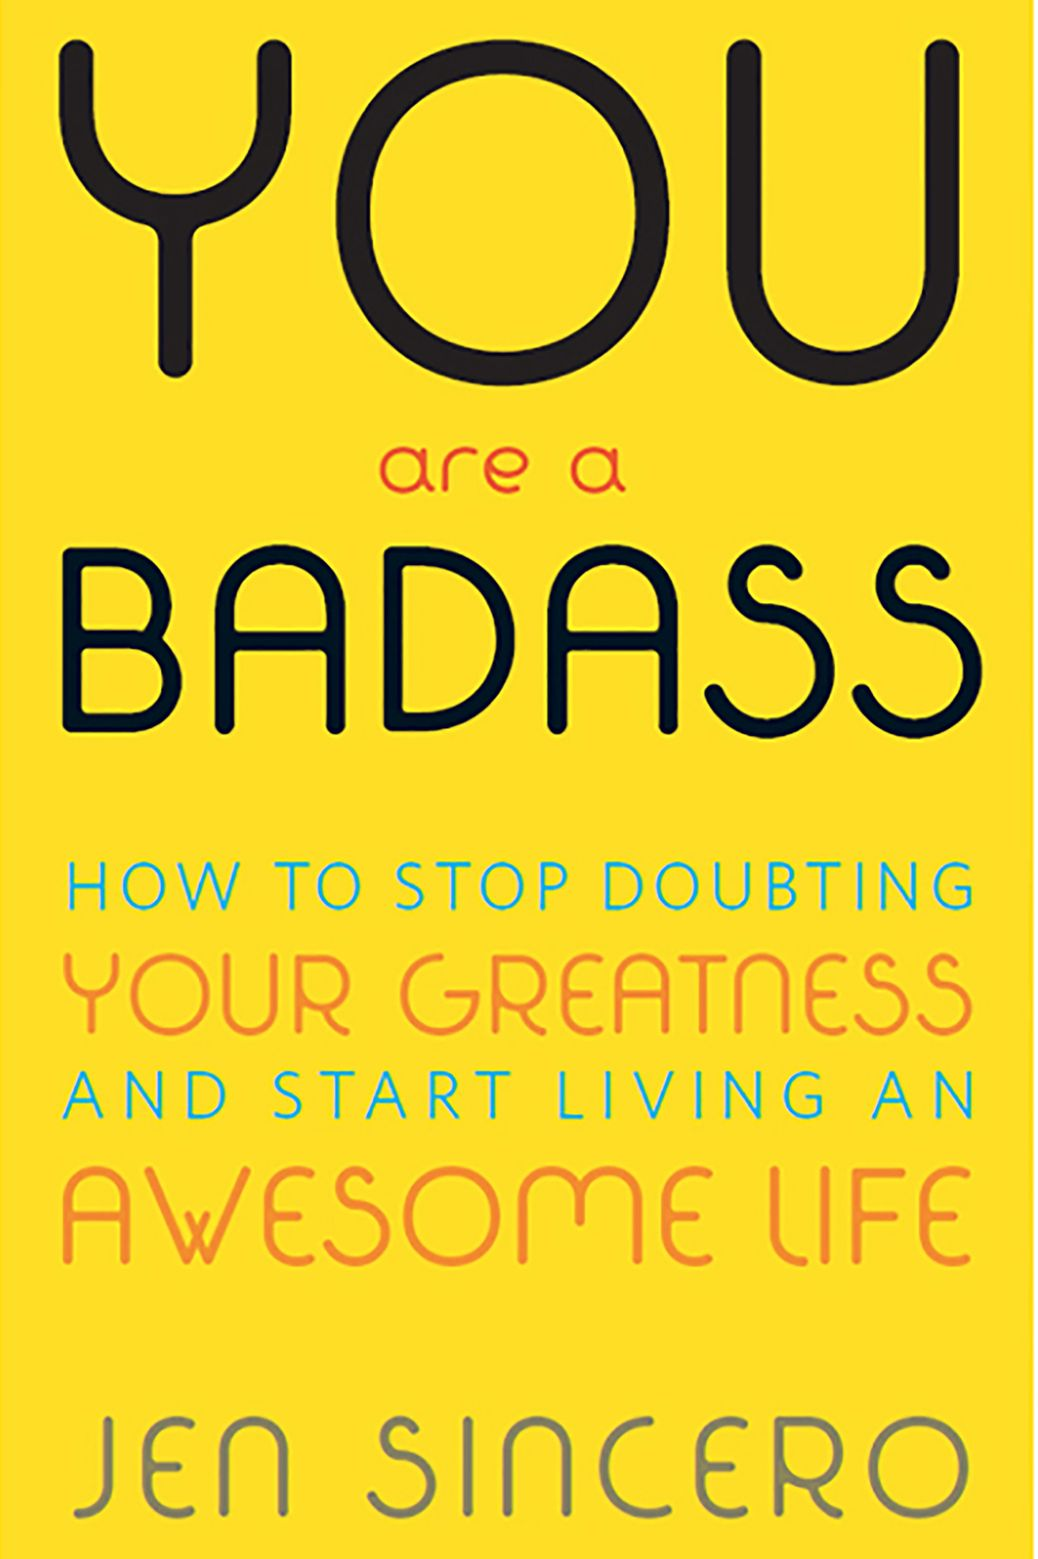 'You Are a Badass' by Jen Sincero